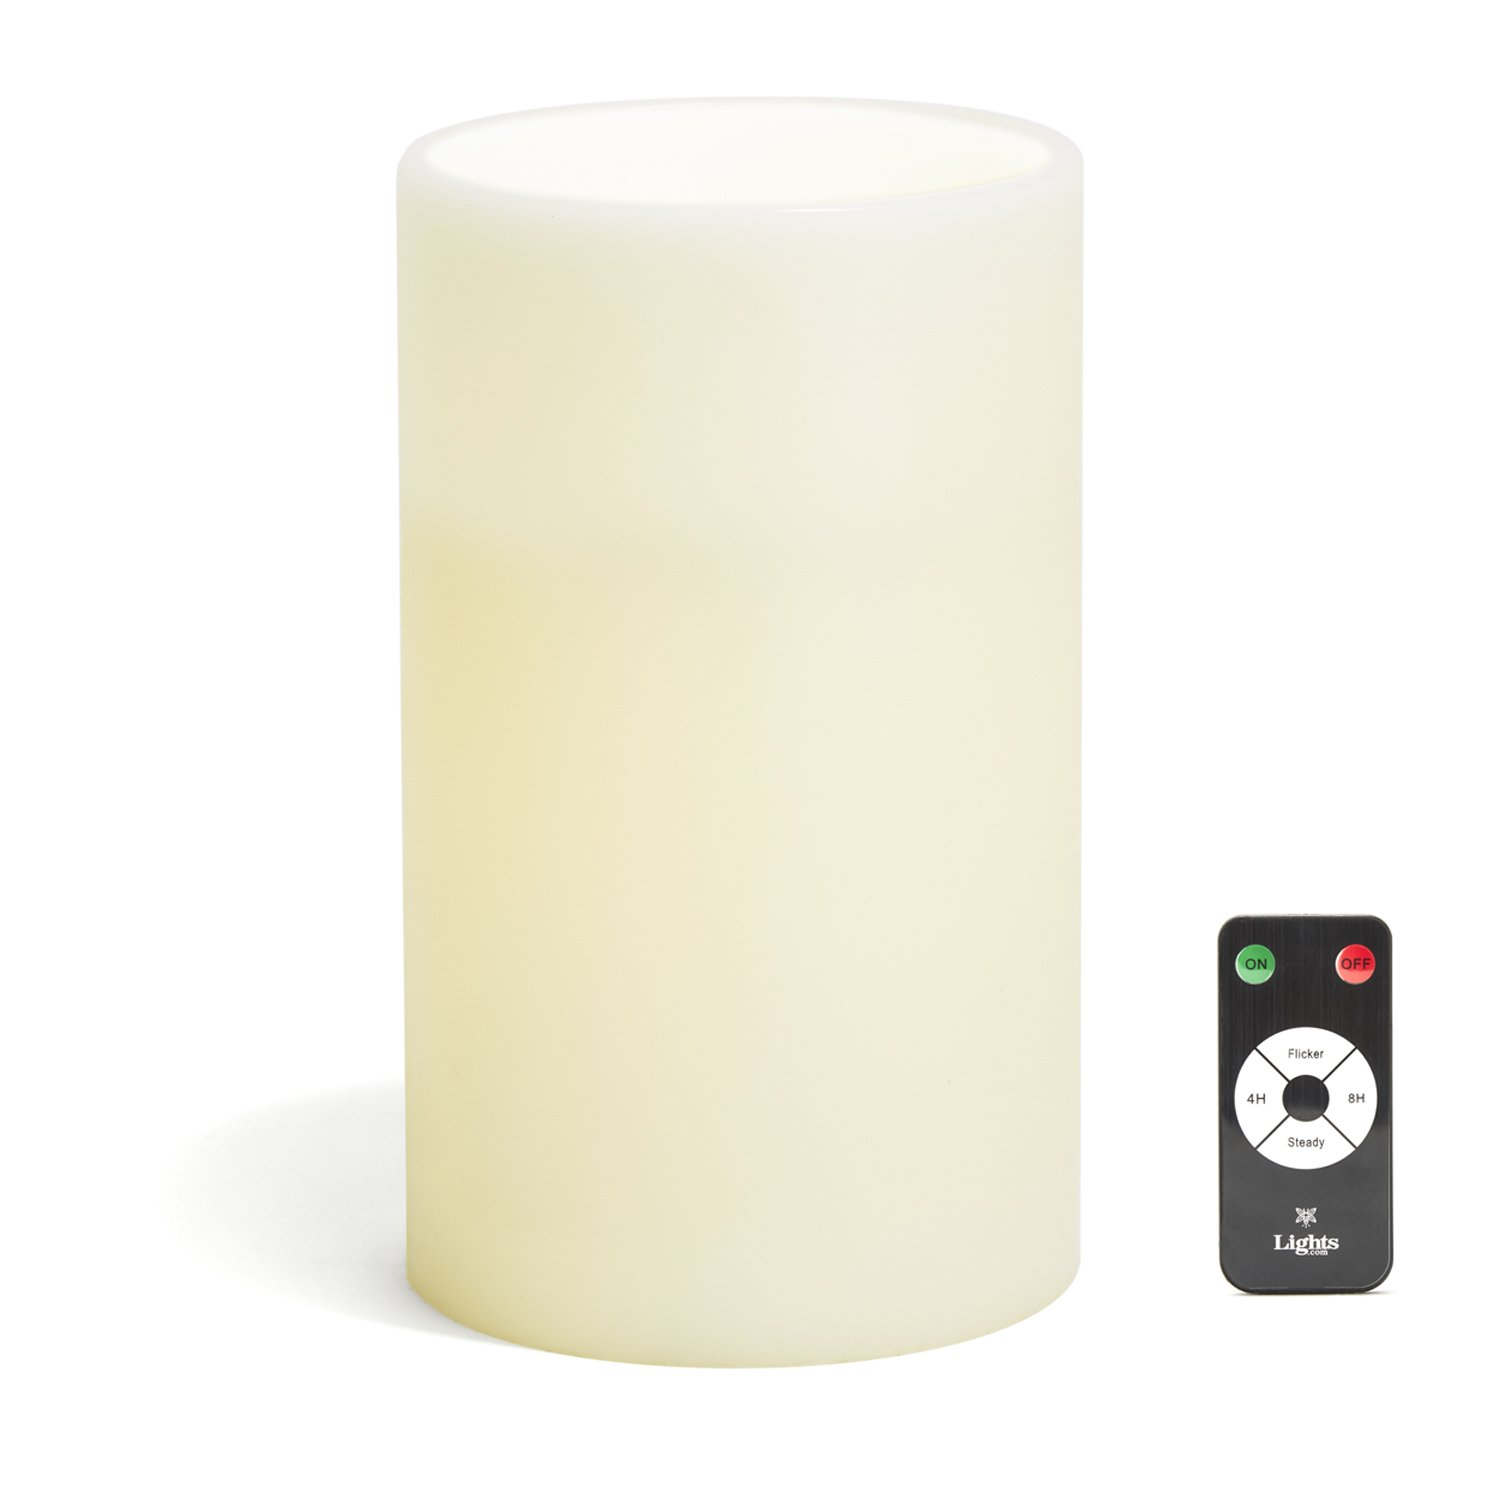 Amazoncom Large Ivory Wax Flameless Pillar Candle With Remote, 6X10,